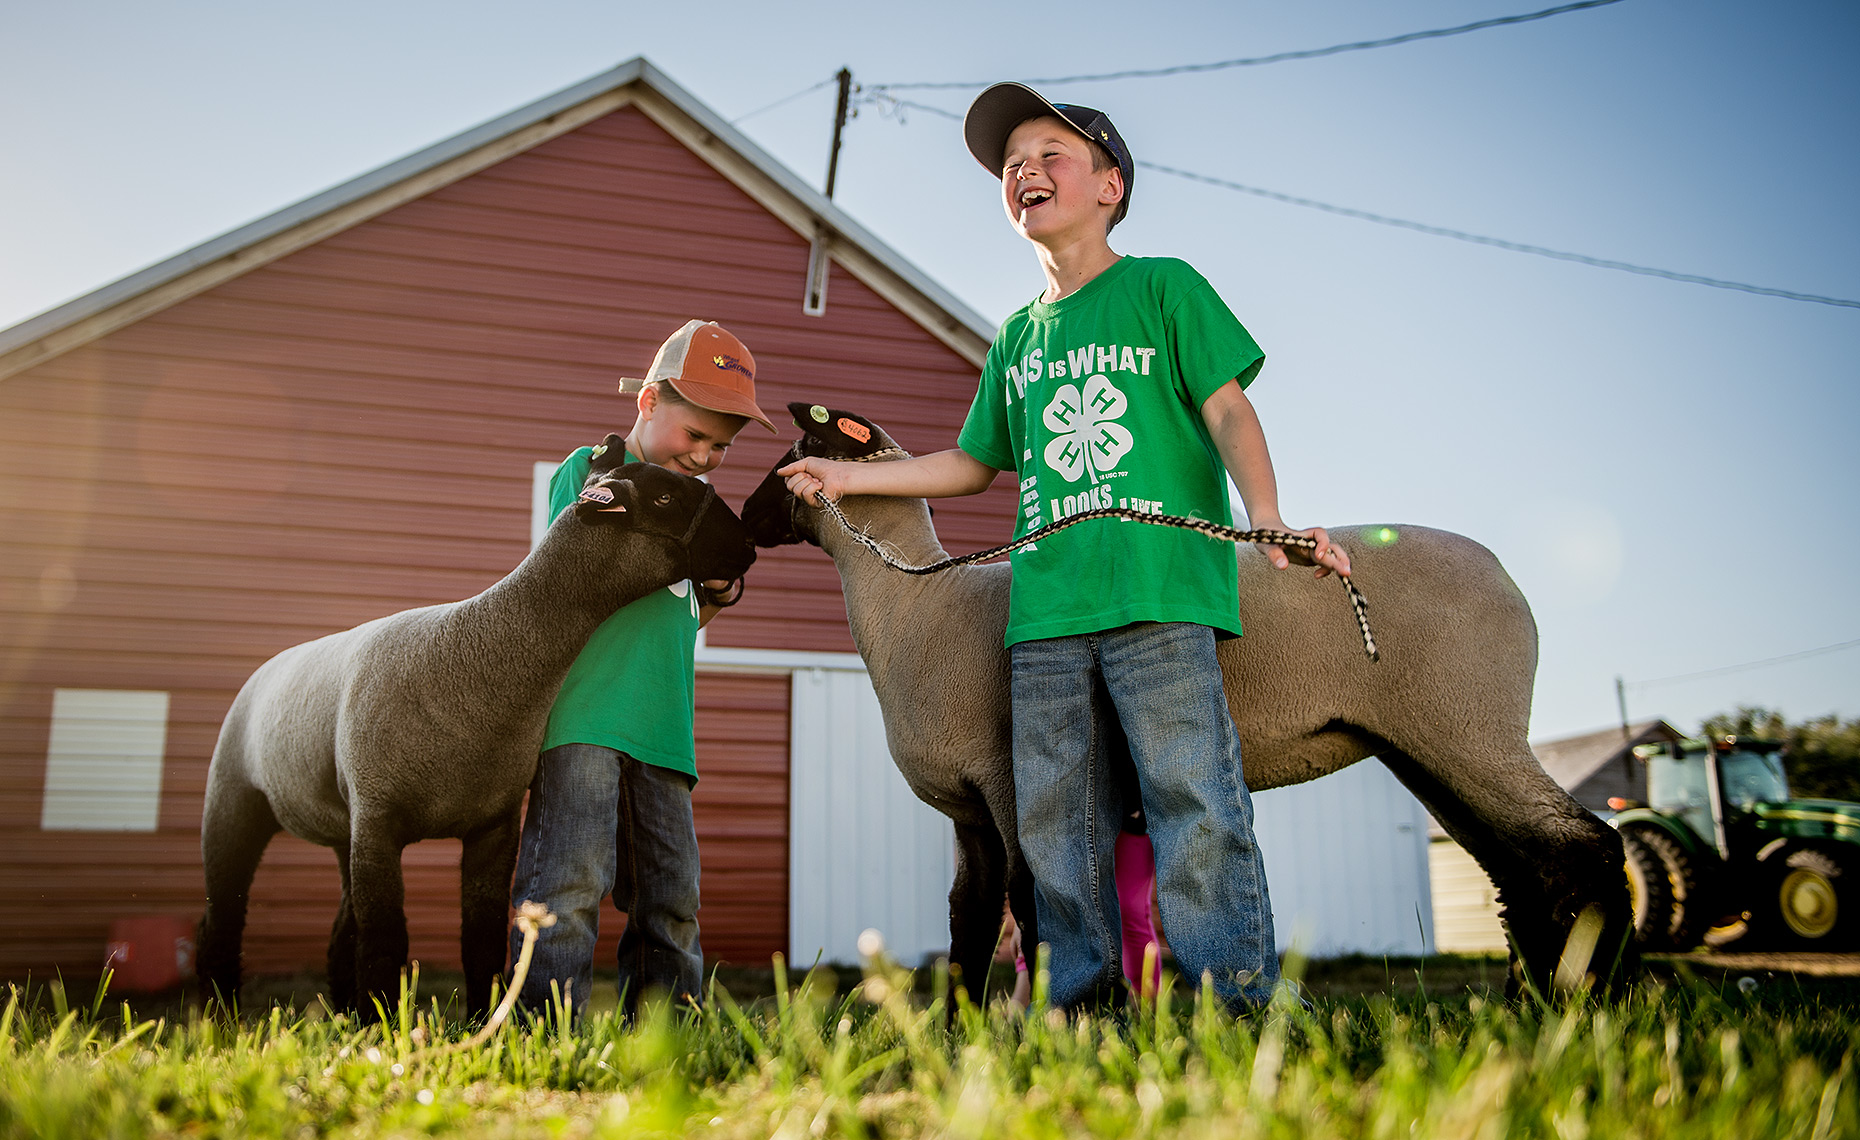 Kids with Sheep on Farm